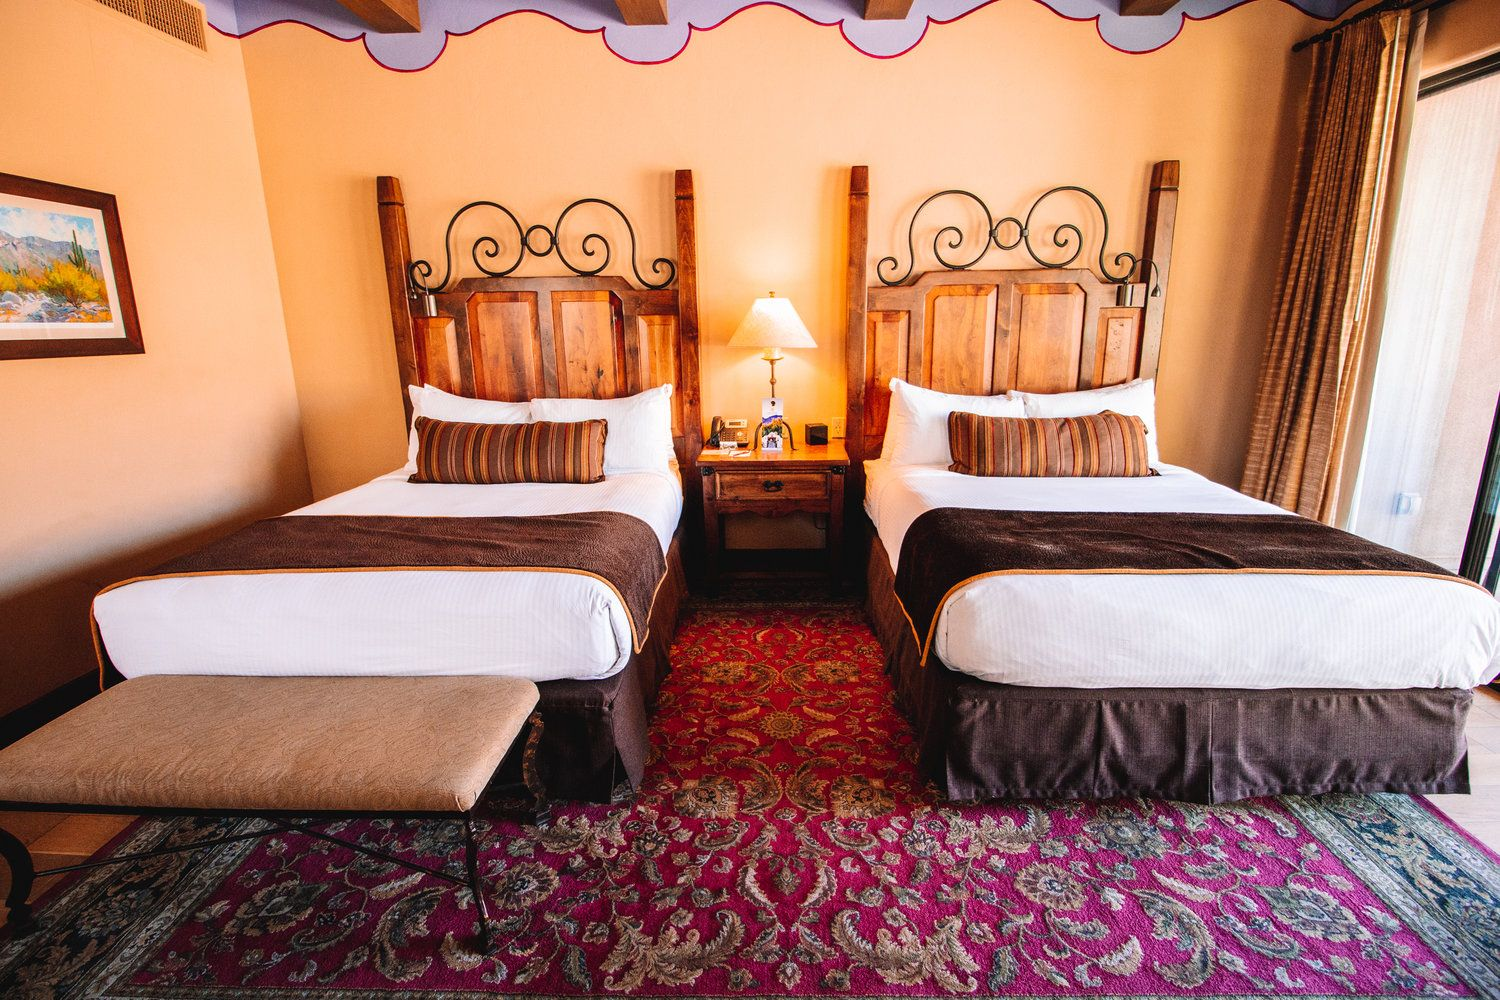 Lodging Review Hacienda Del Sol Tucson Beyond Ordinary Guides Curated Travel Guides Authentic Stores For The Hacienda Curated Travel Lodges